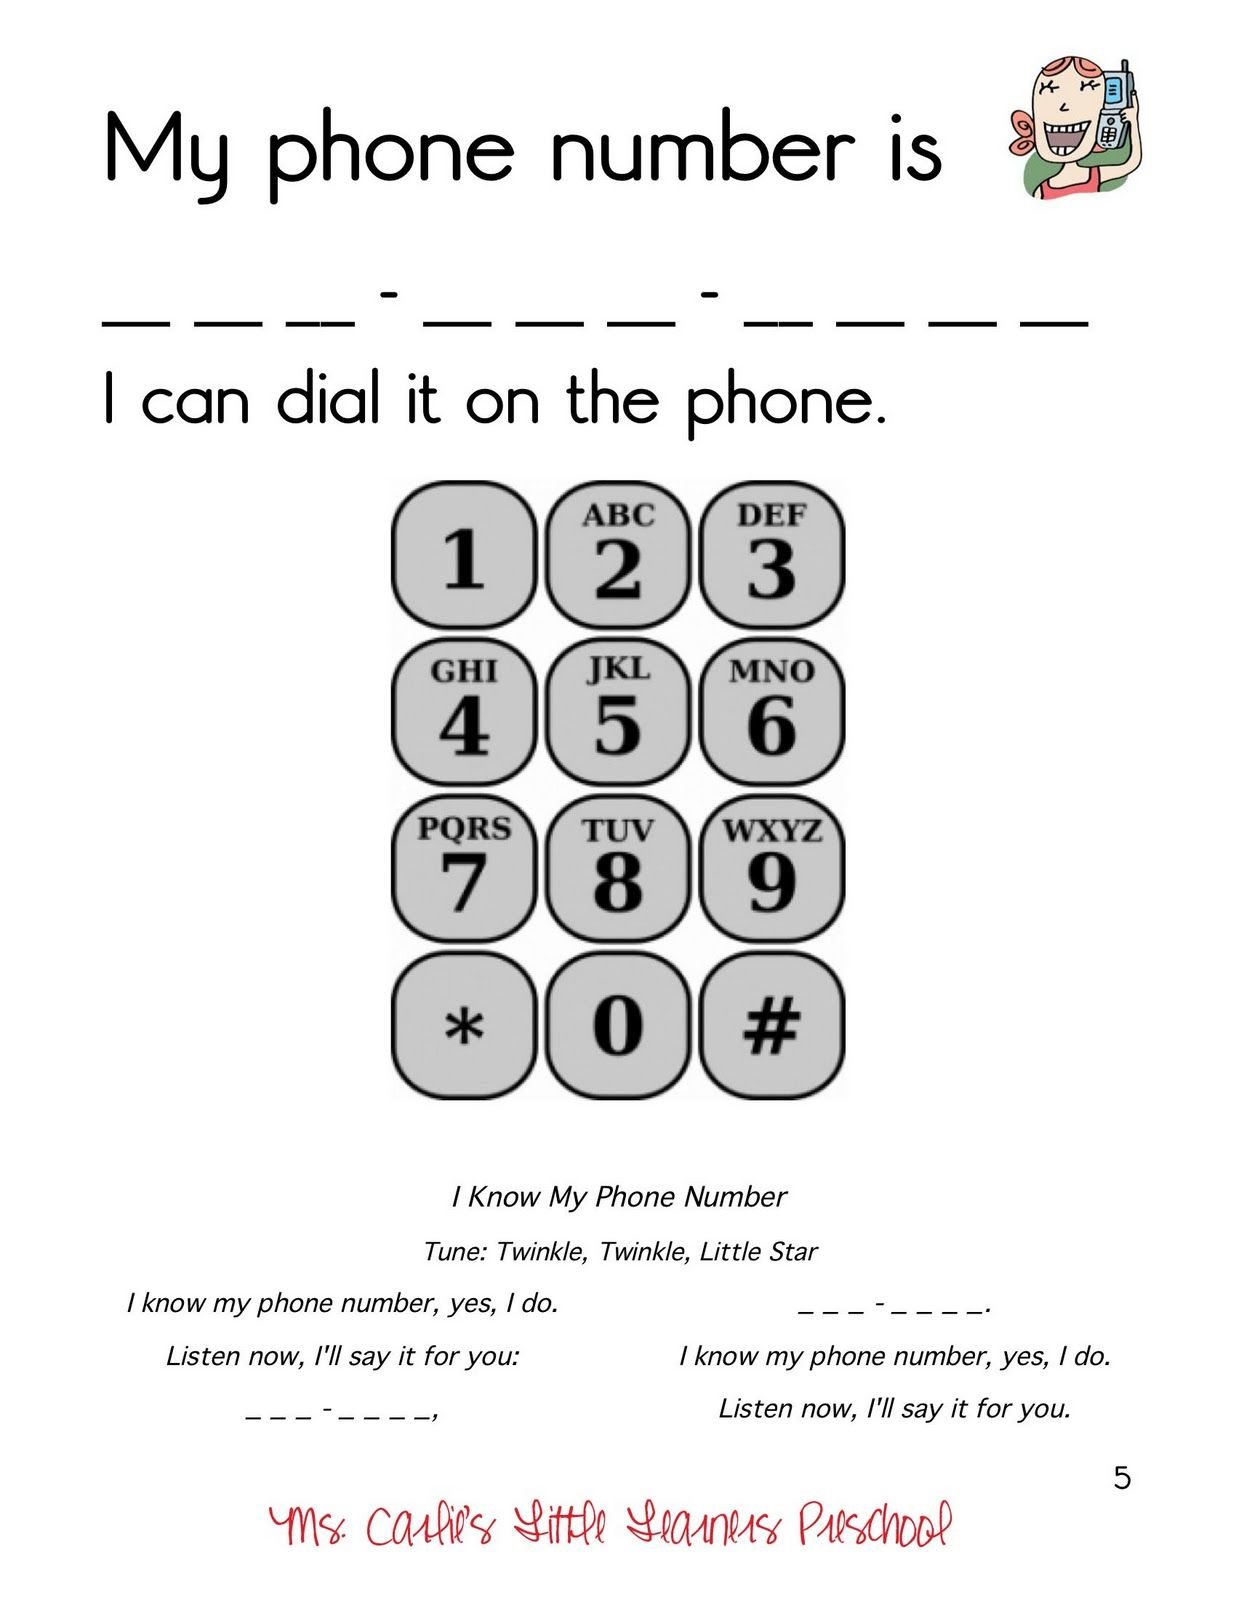 efefd061d671298af1ded681da68d999 - How To Get My Phone Number From My Phone